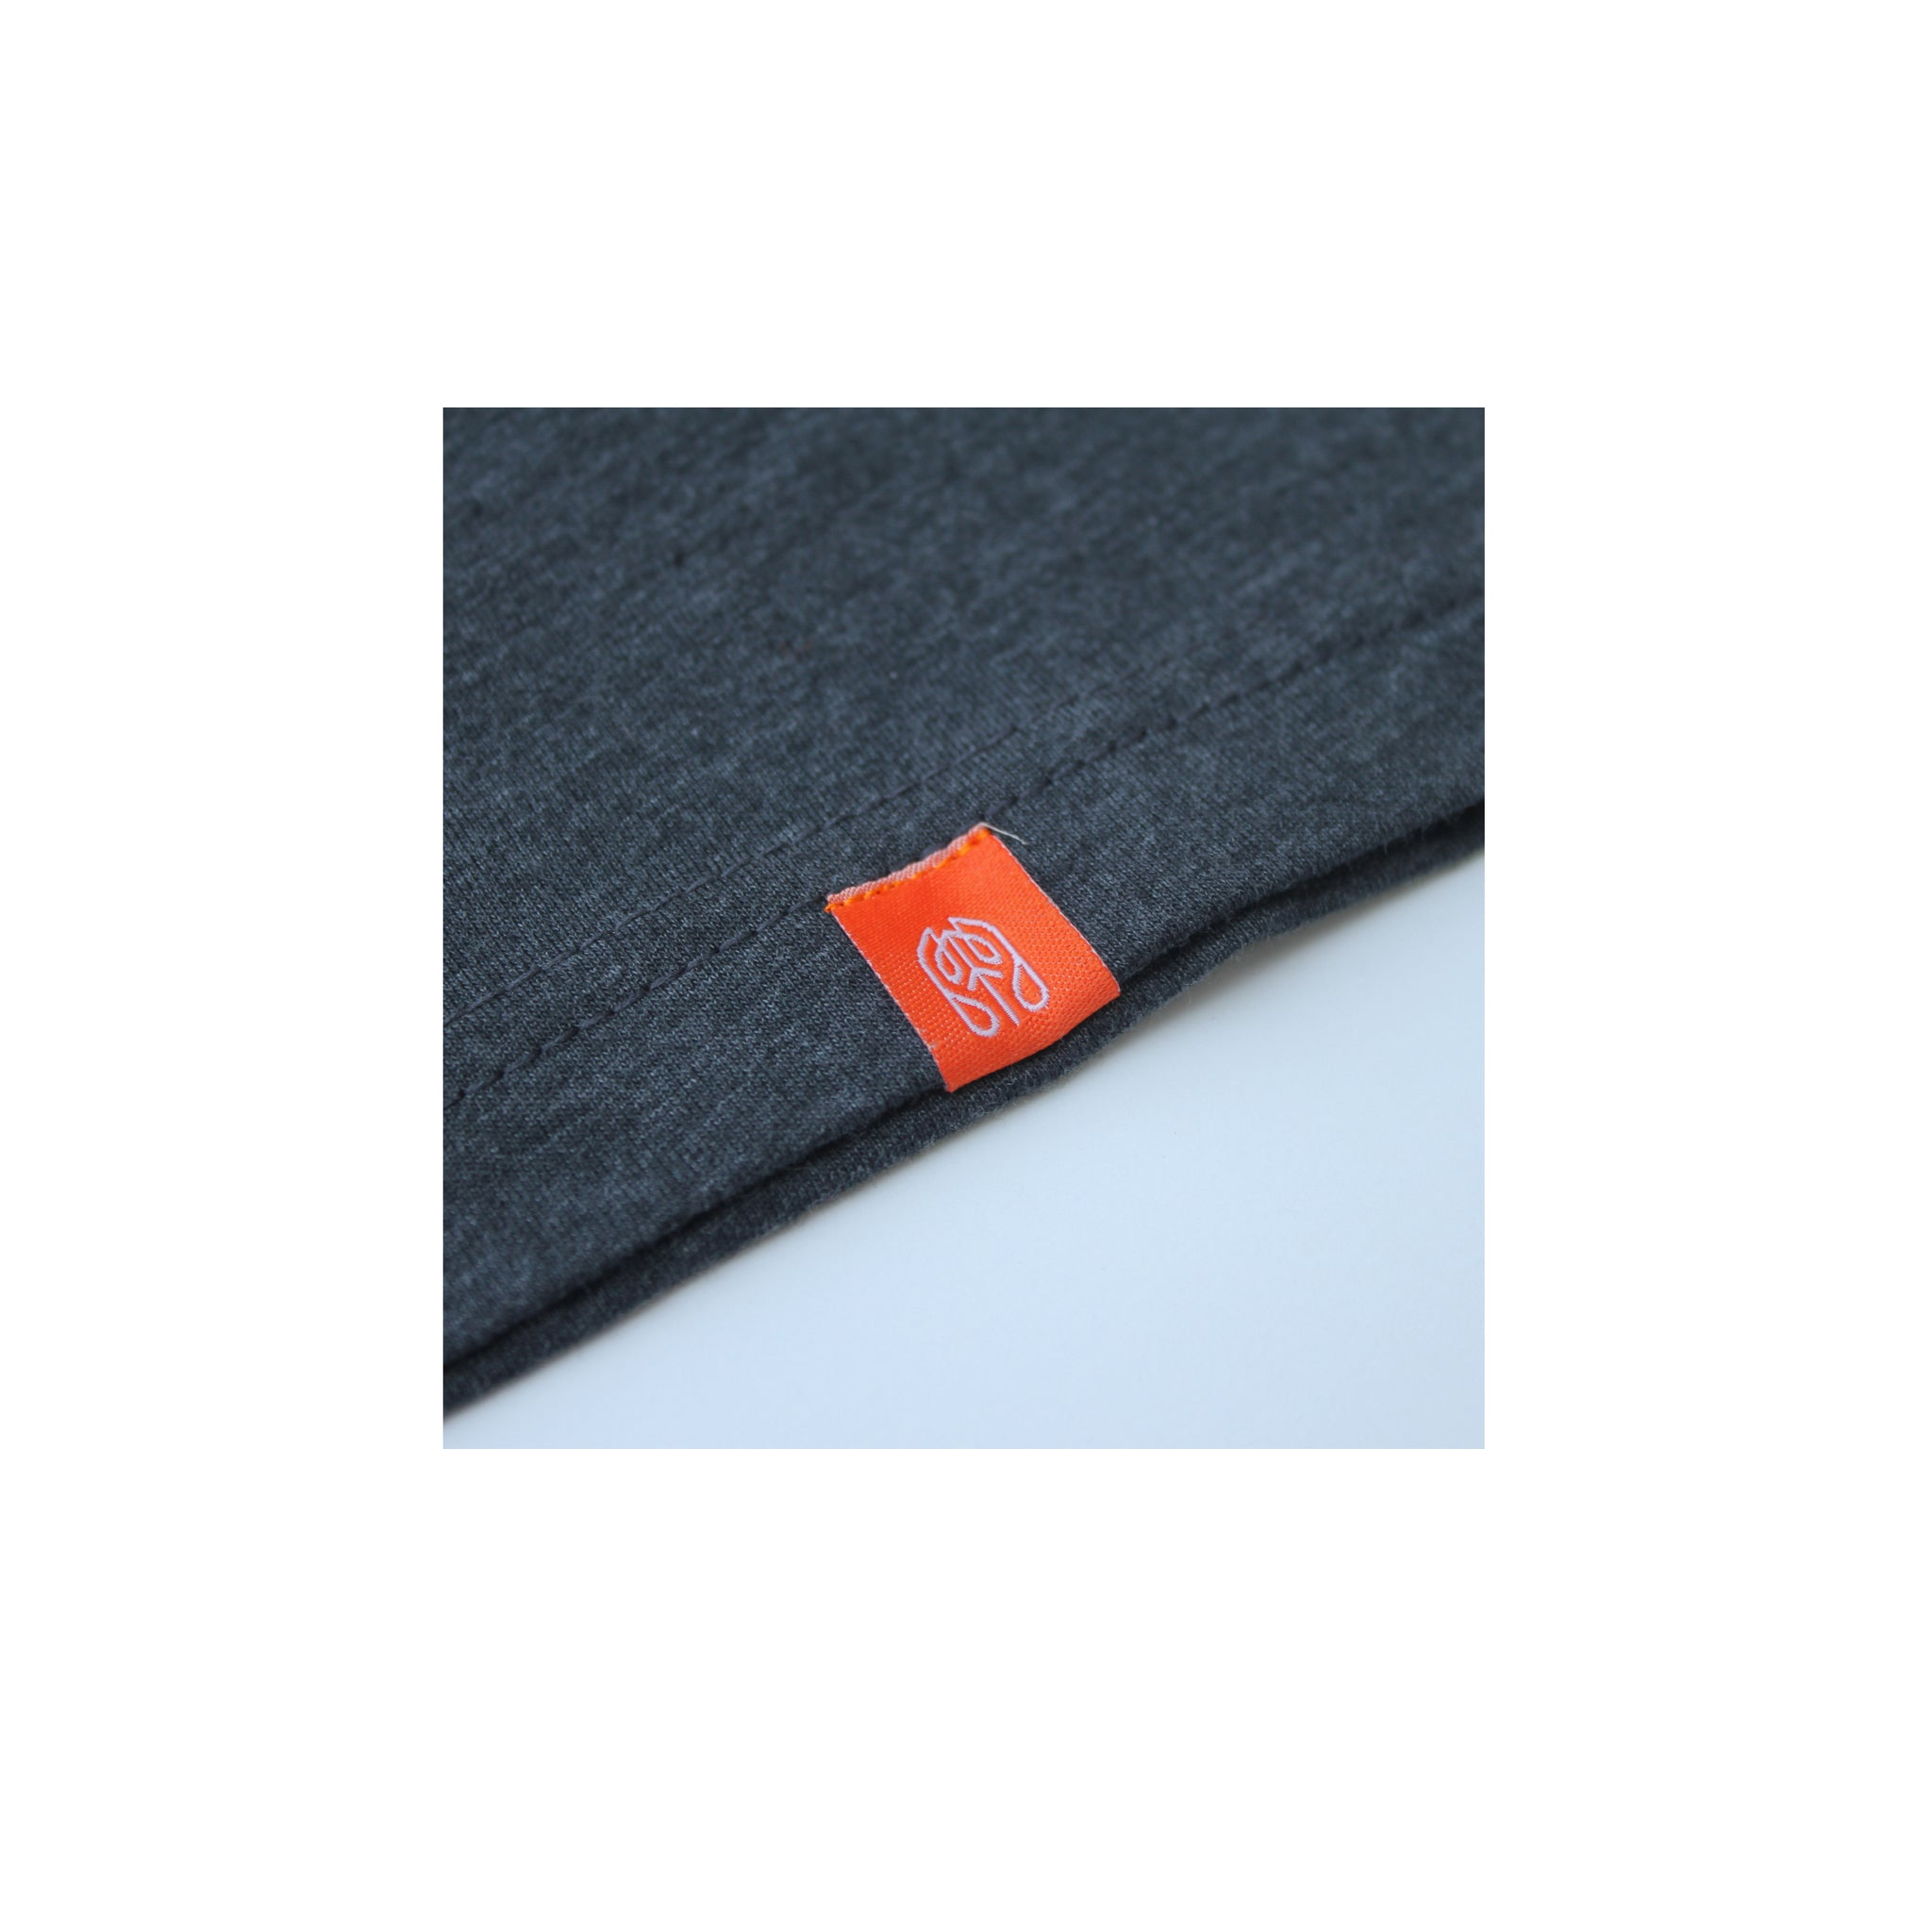 Charcoal - Common Ground T shirt Hem Tag View